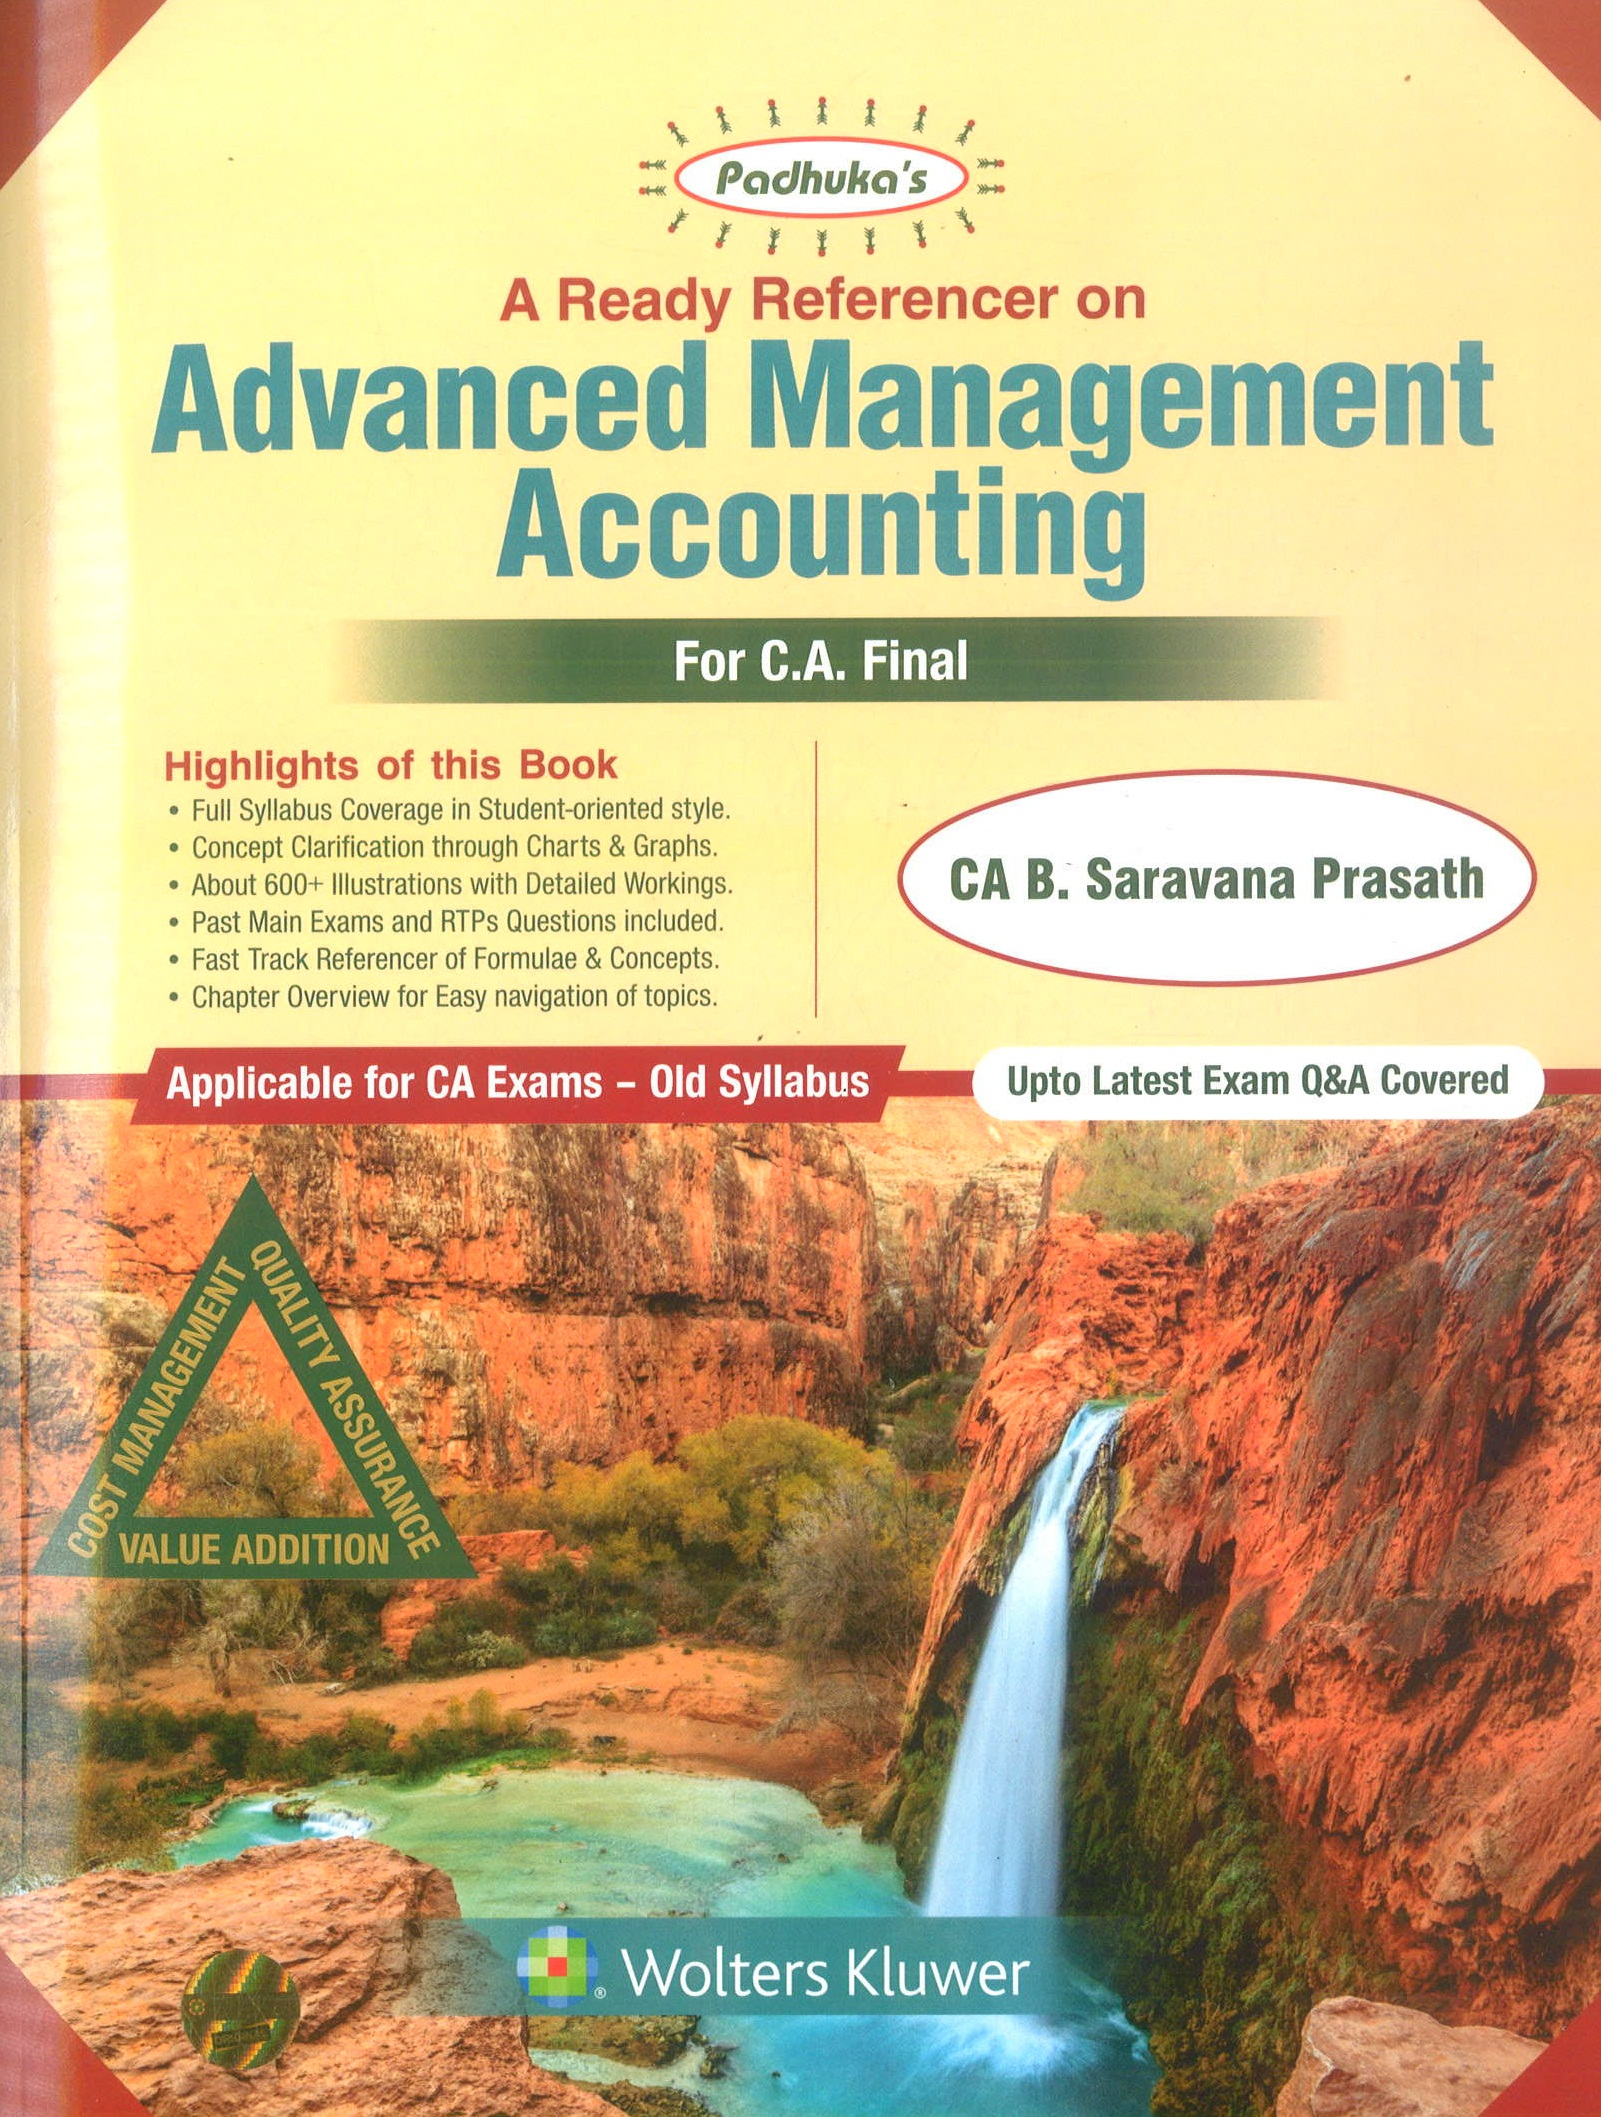 Padhuka A Ready Referencer on Advanced Management Accounting for CA Final May 2019 exam by CA B. Saravana Prasath (Wolters Kluwer Publishing) Edition Dec 2018